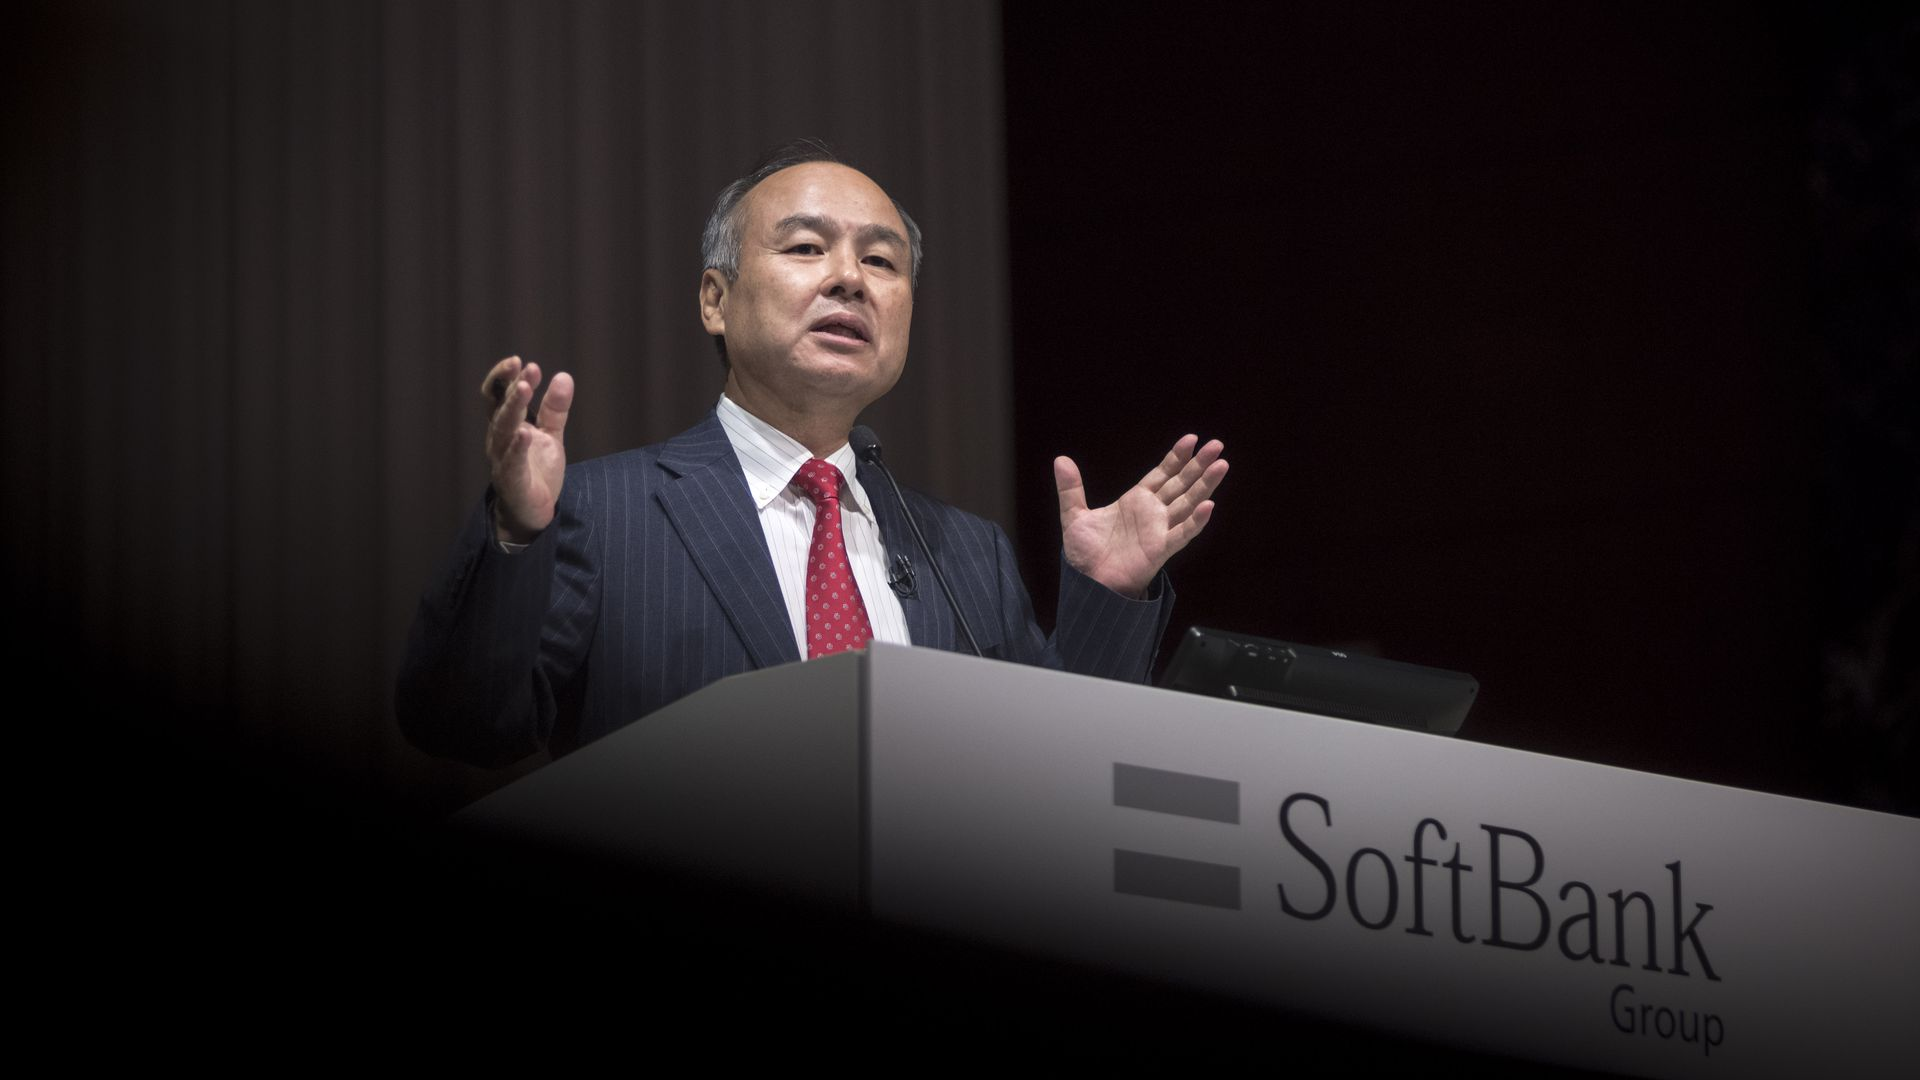 SoftBank founder Masa Son